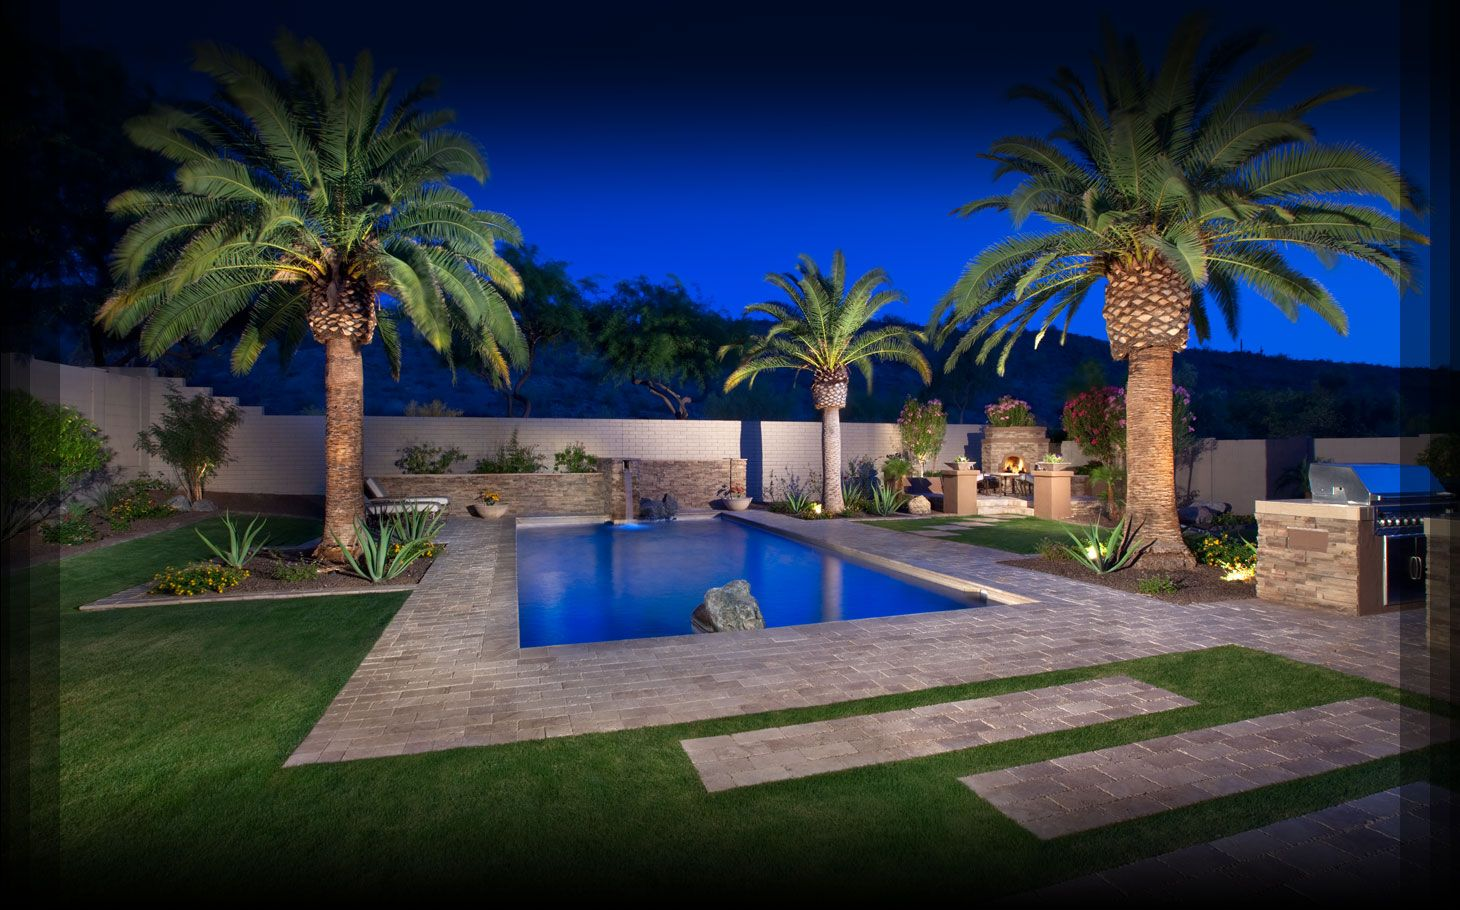 Desert pool landscaping arizona phoenix pool for Landscaping ideas for pool areas